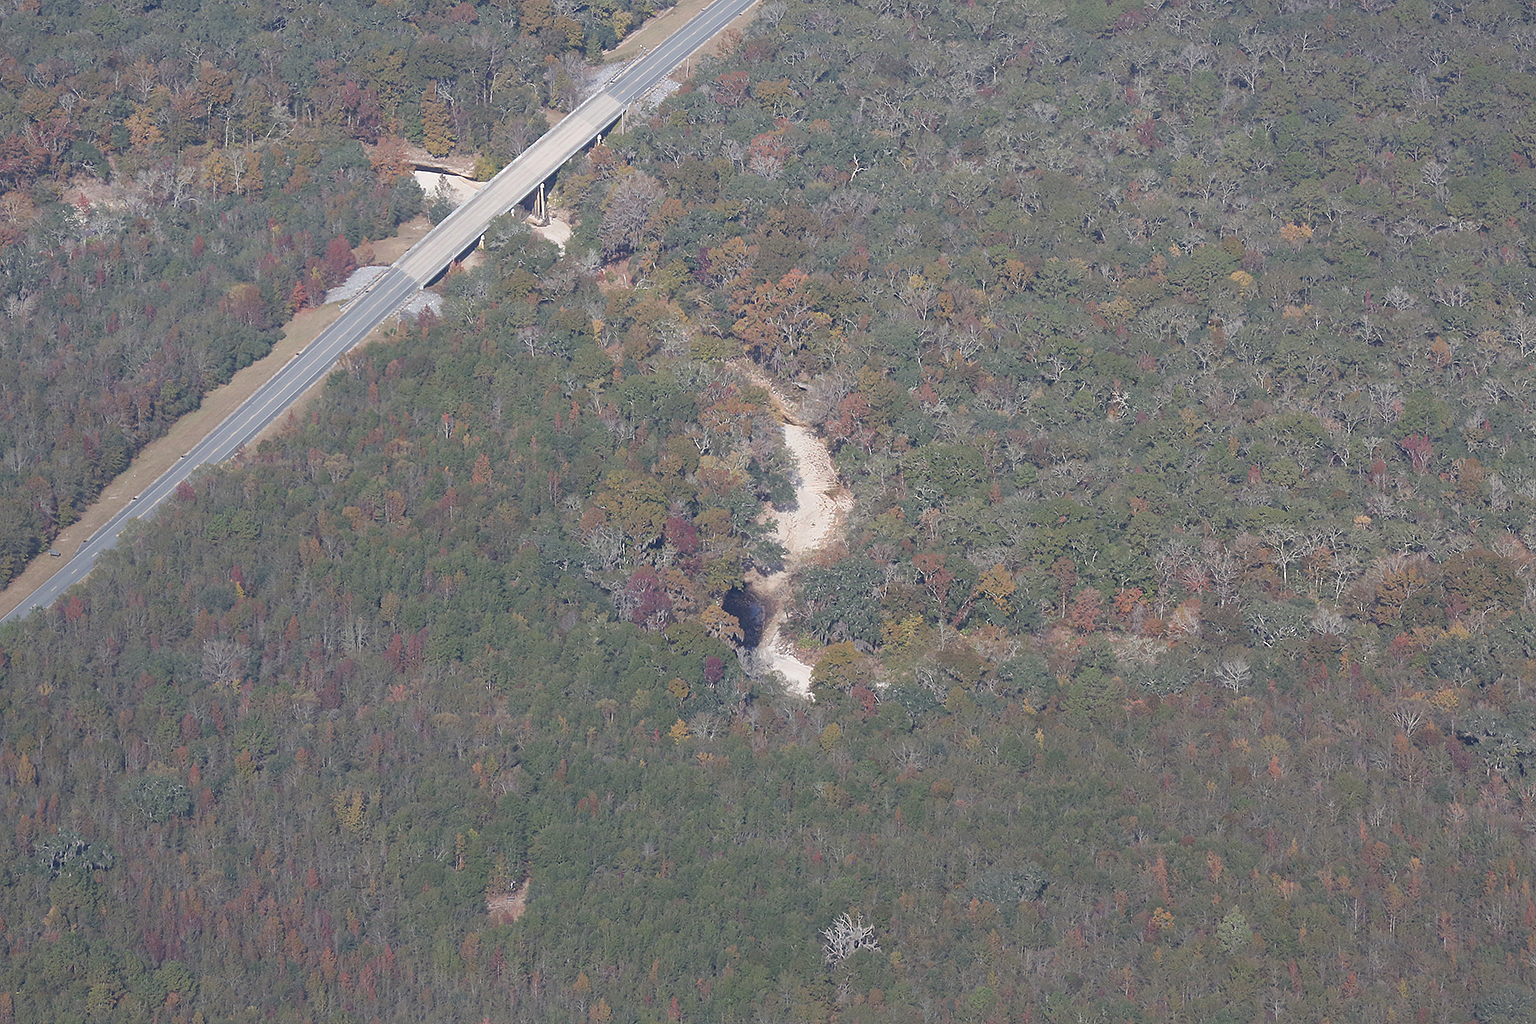 1536x1024 CR 751 bridge, dry Alapaha River, 30.448576, -83.096886, in Aerials: Dry Alapaha River and the Alapaha Rise, by Beth Gammie, for WWALS.net, 23 November 2016